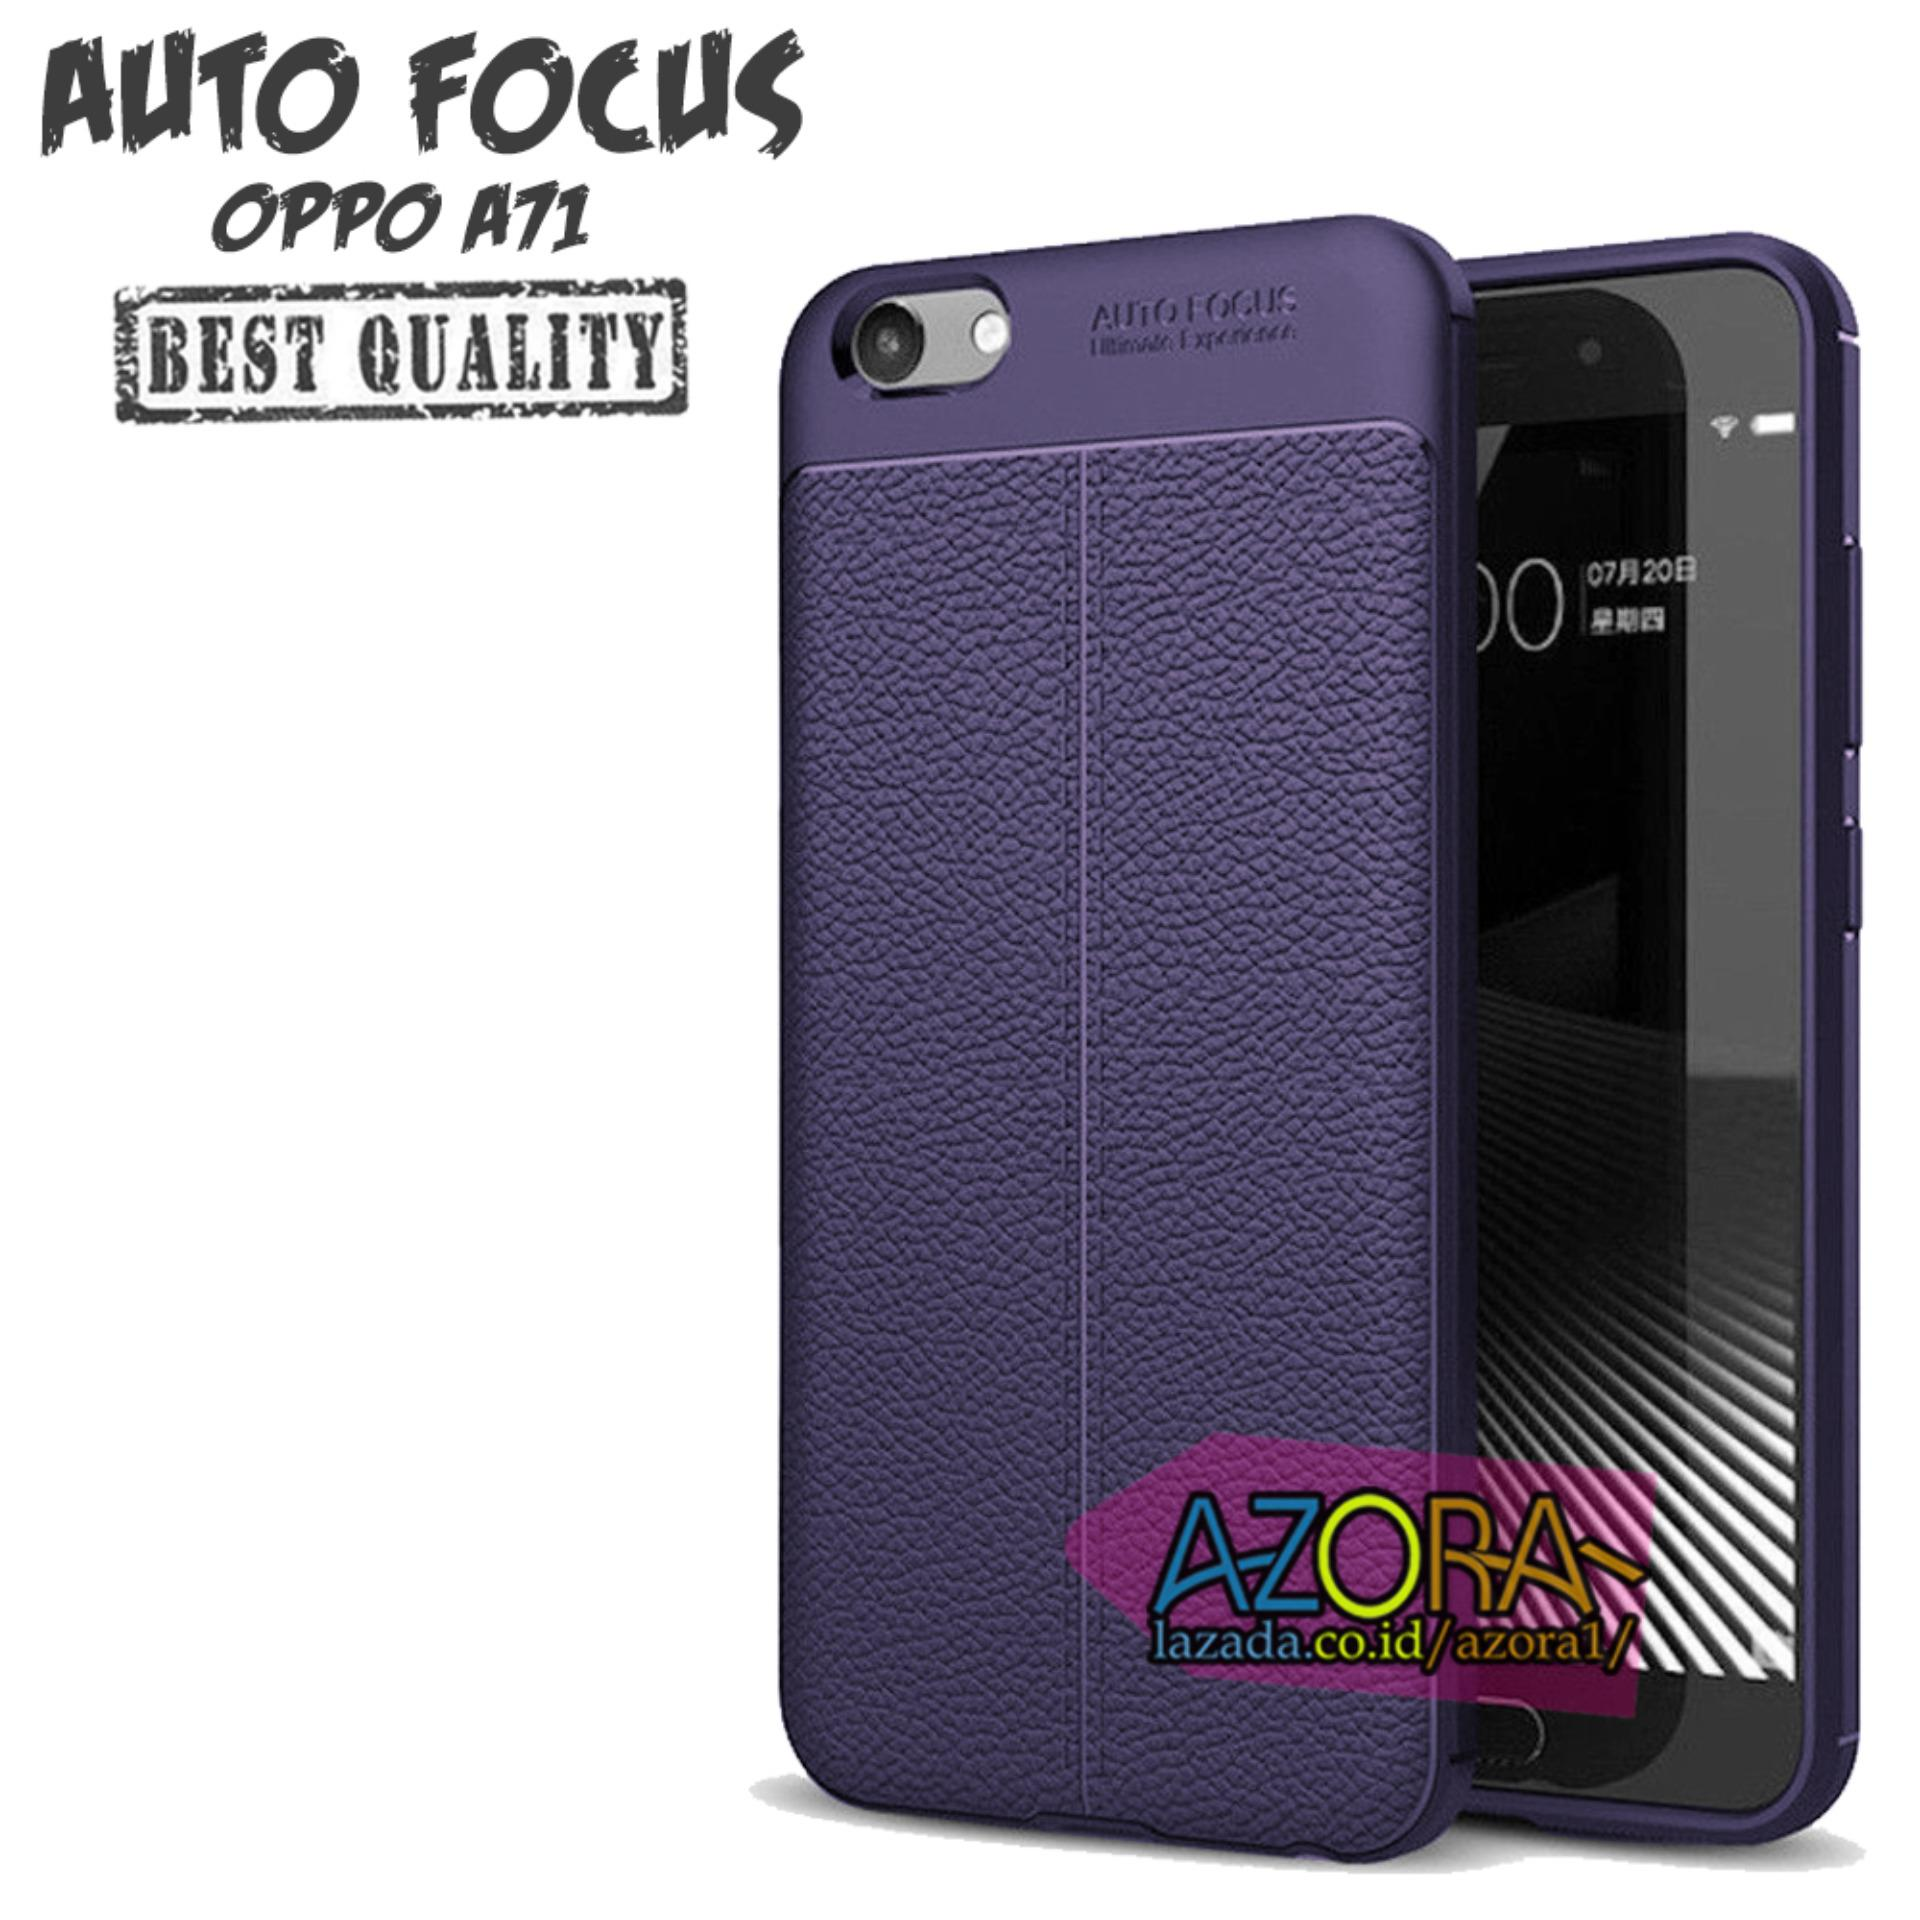 Case Auto Focus Oppo A71 Leather Experience Slim Ultimate